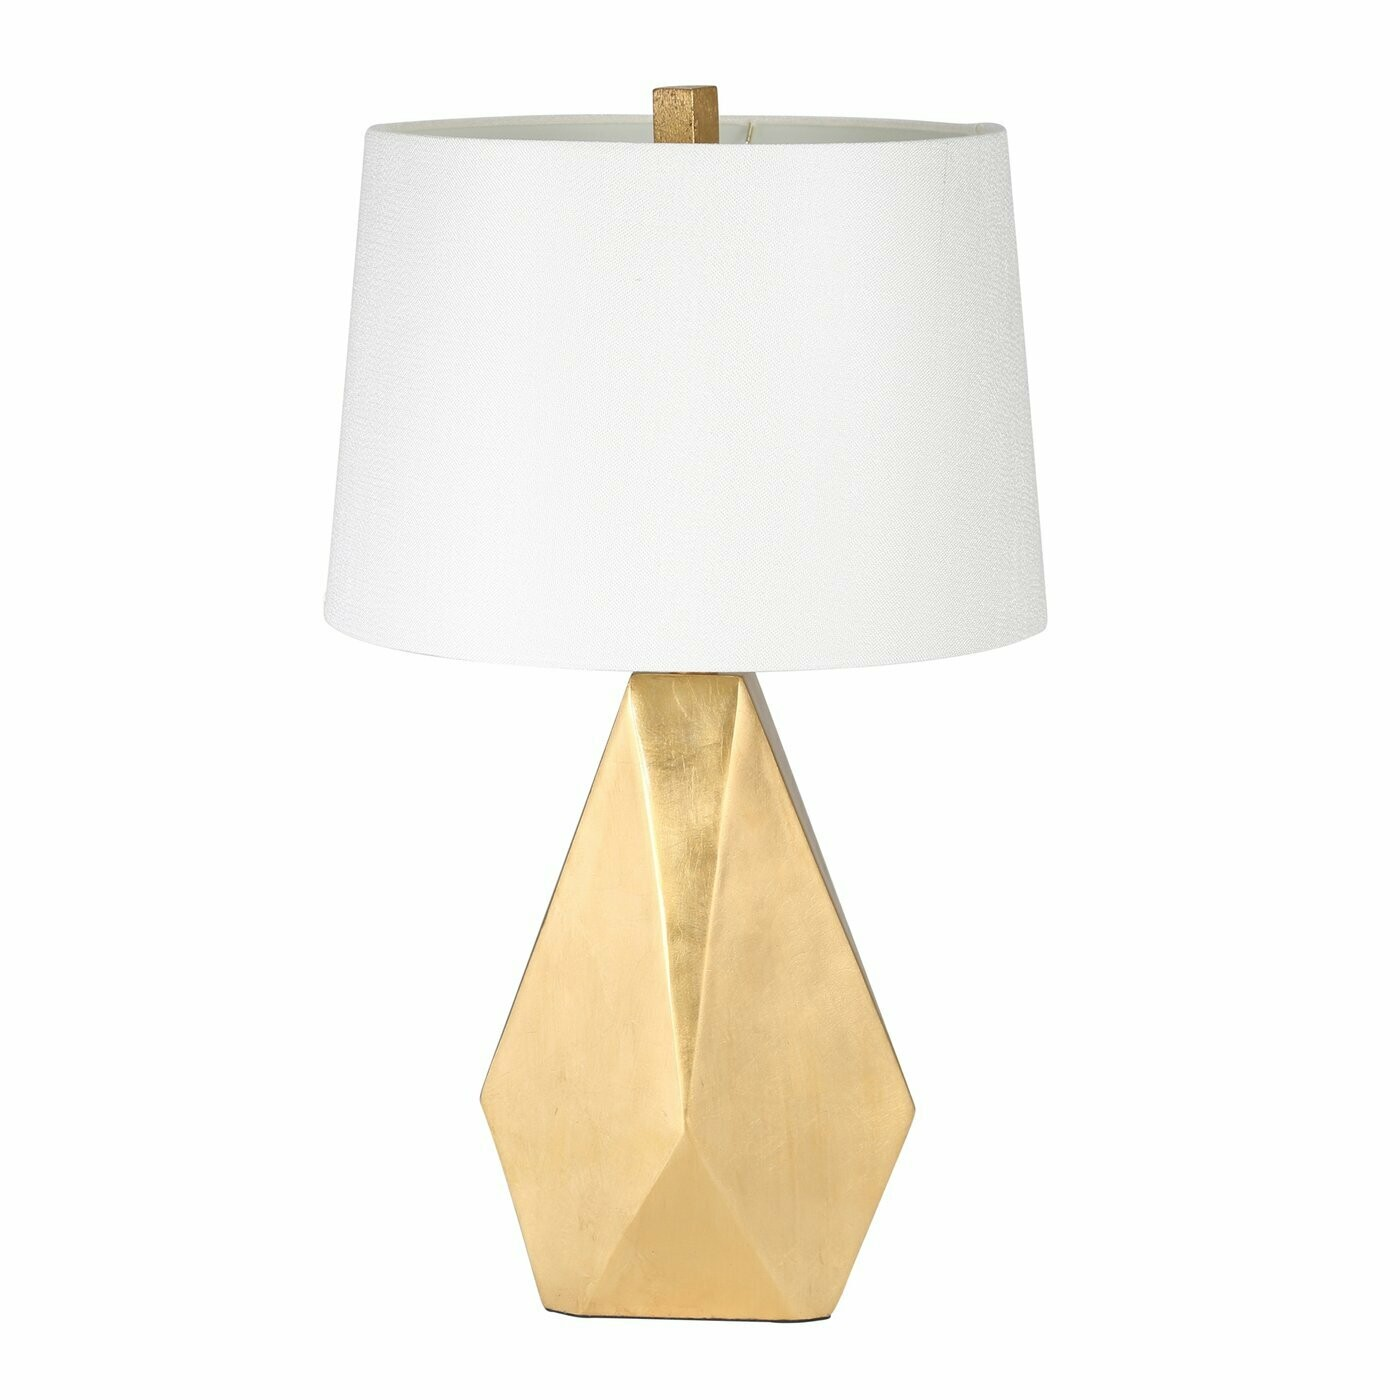 SB Gold Geo Table Lamp